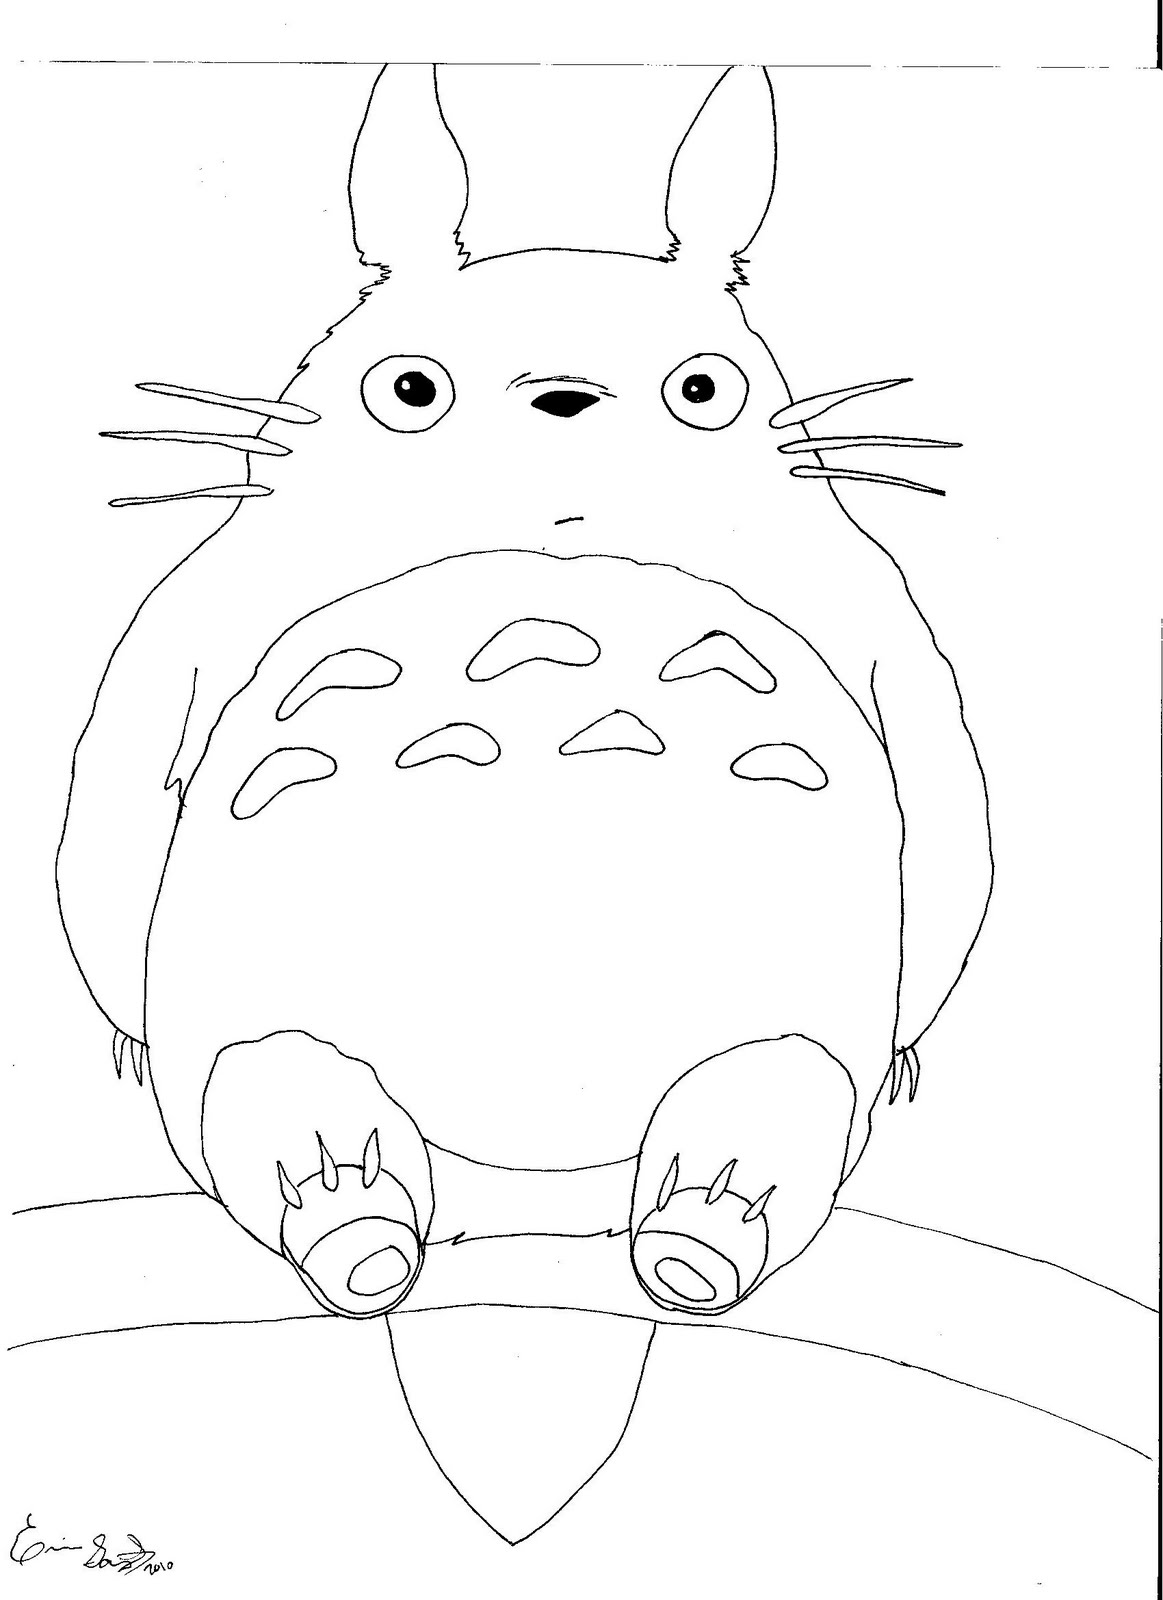 displaying 18u0026gt images for totoro coloring page - Neighbor Totoro Coloring Pages